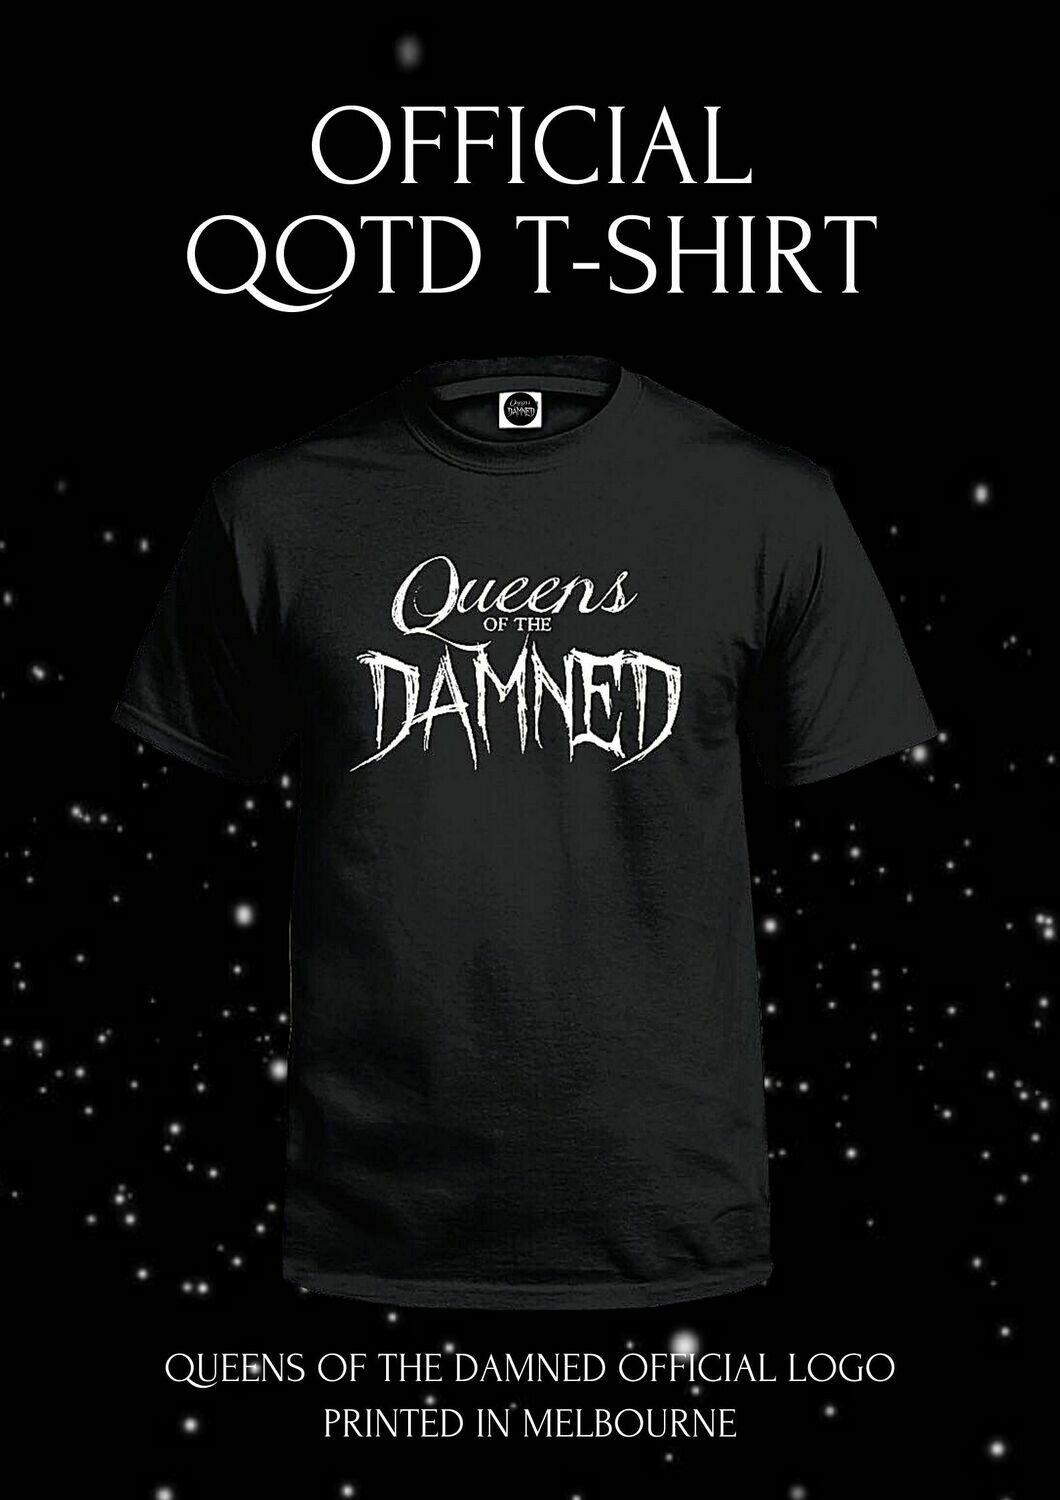 QUEENS OF THE DAMNED OFFICIAL T-SHIRT